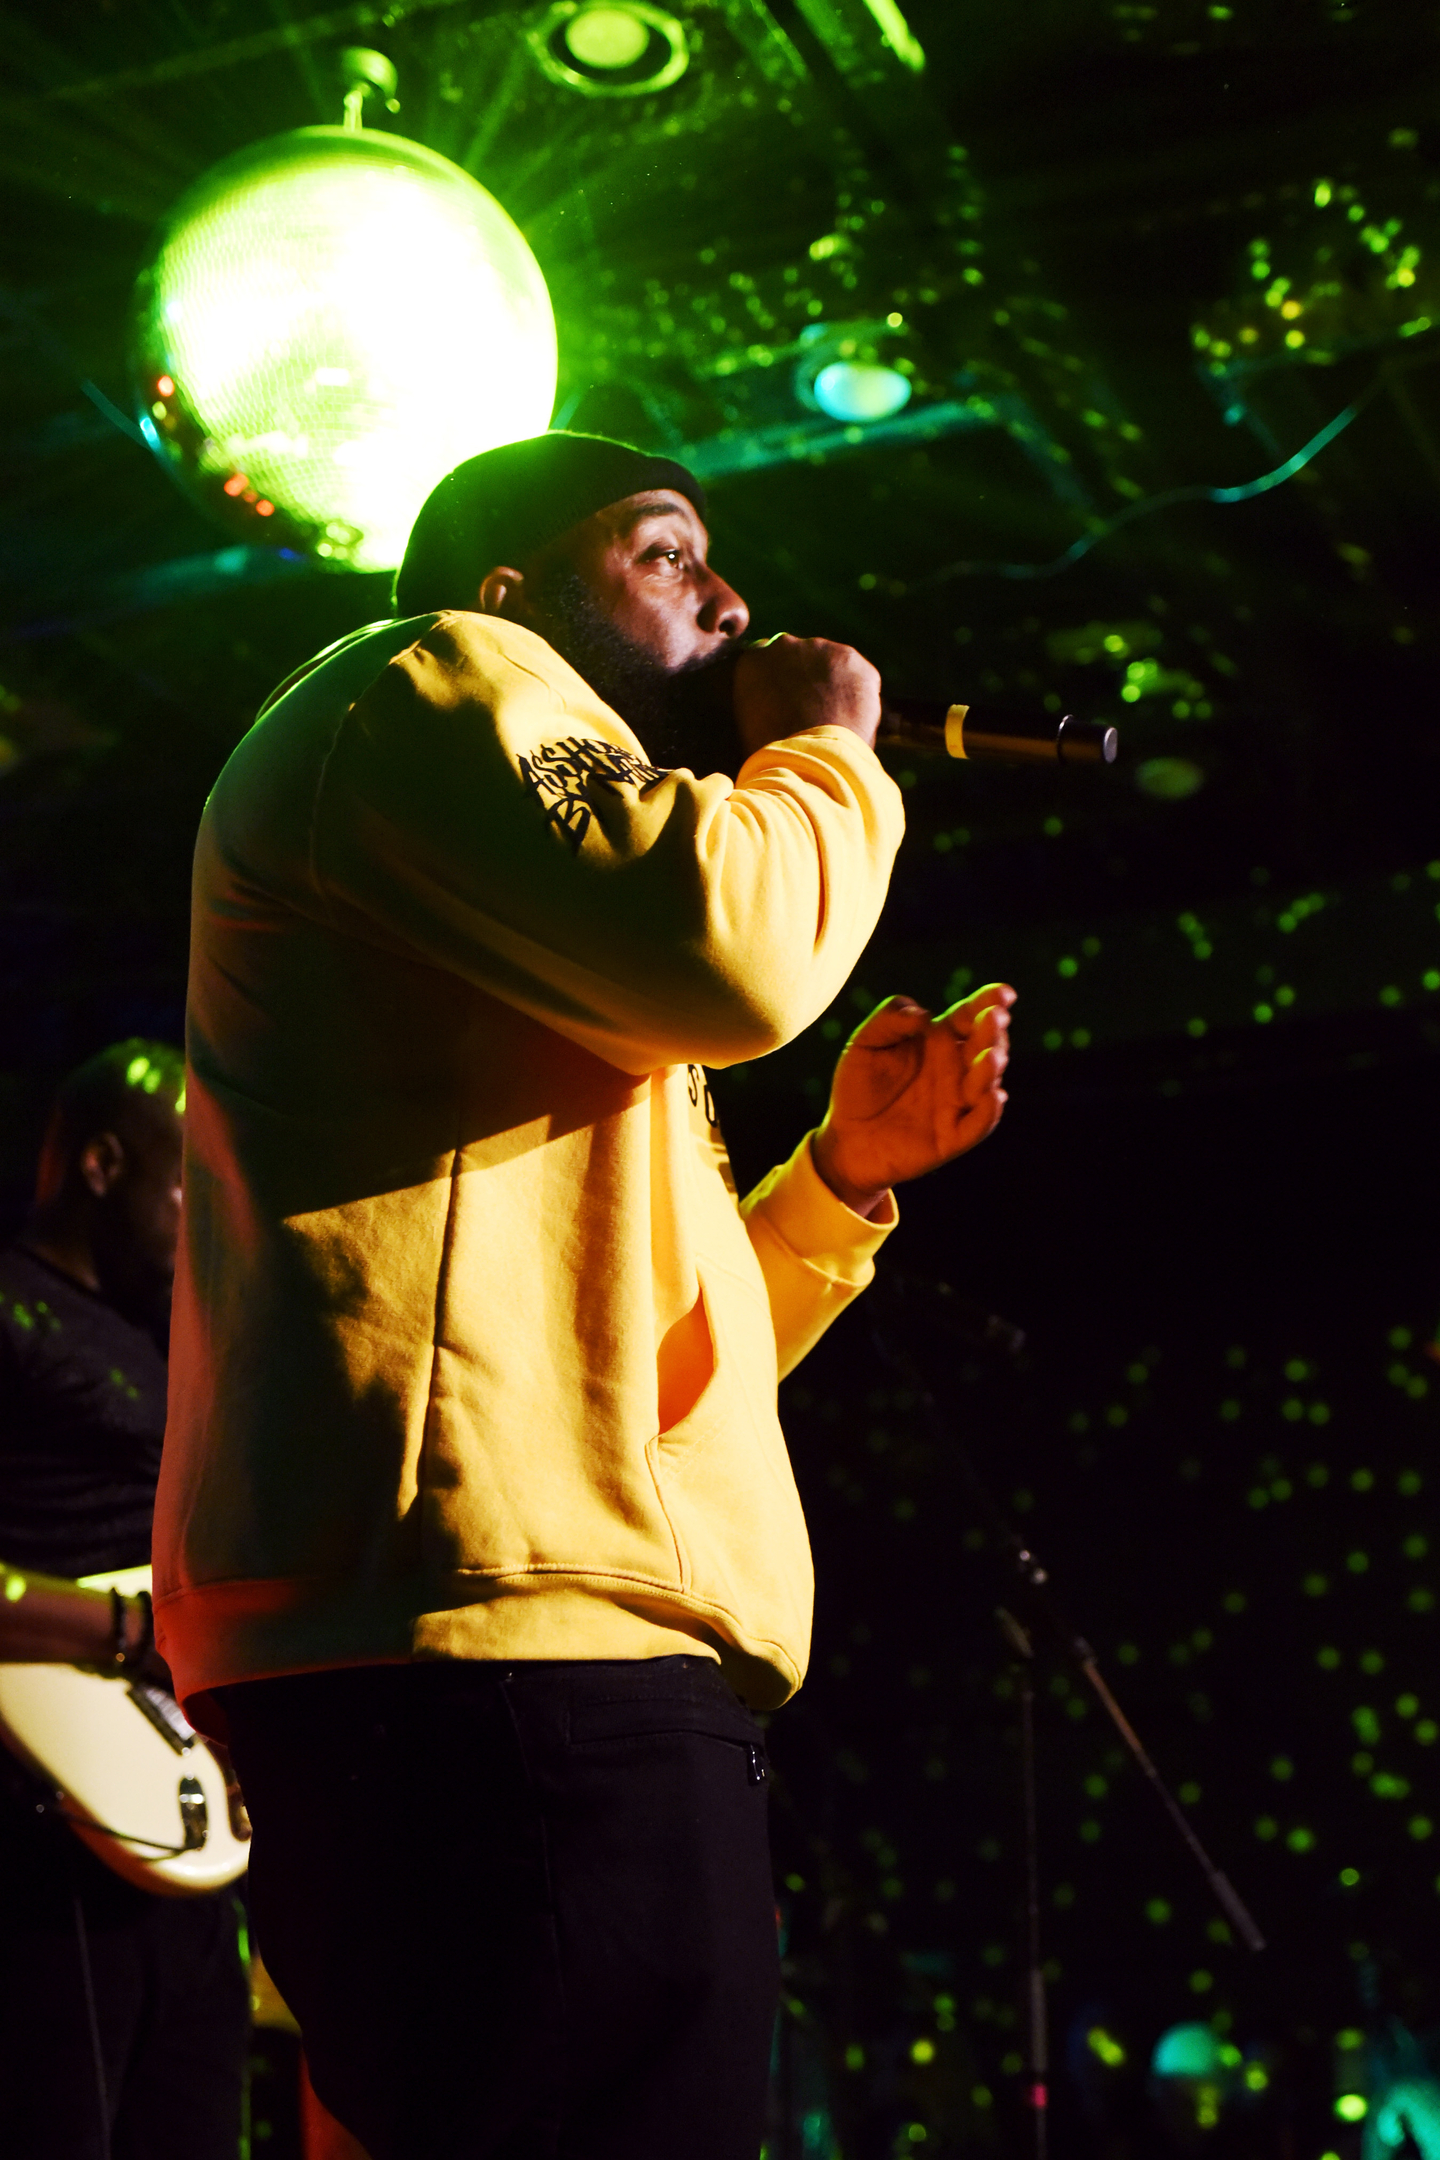 Trae tha Truth performs onstage at the Parish, presented by HEADS music.